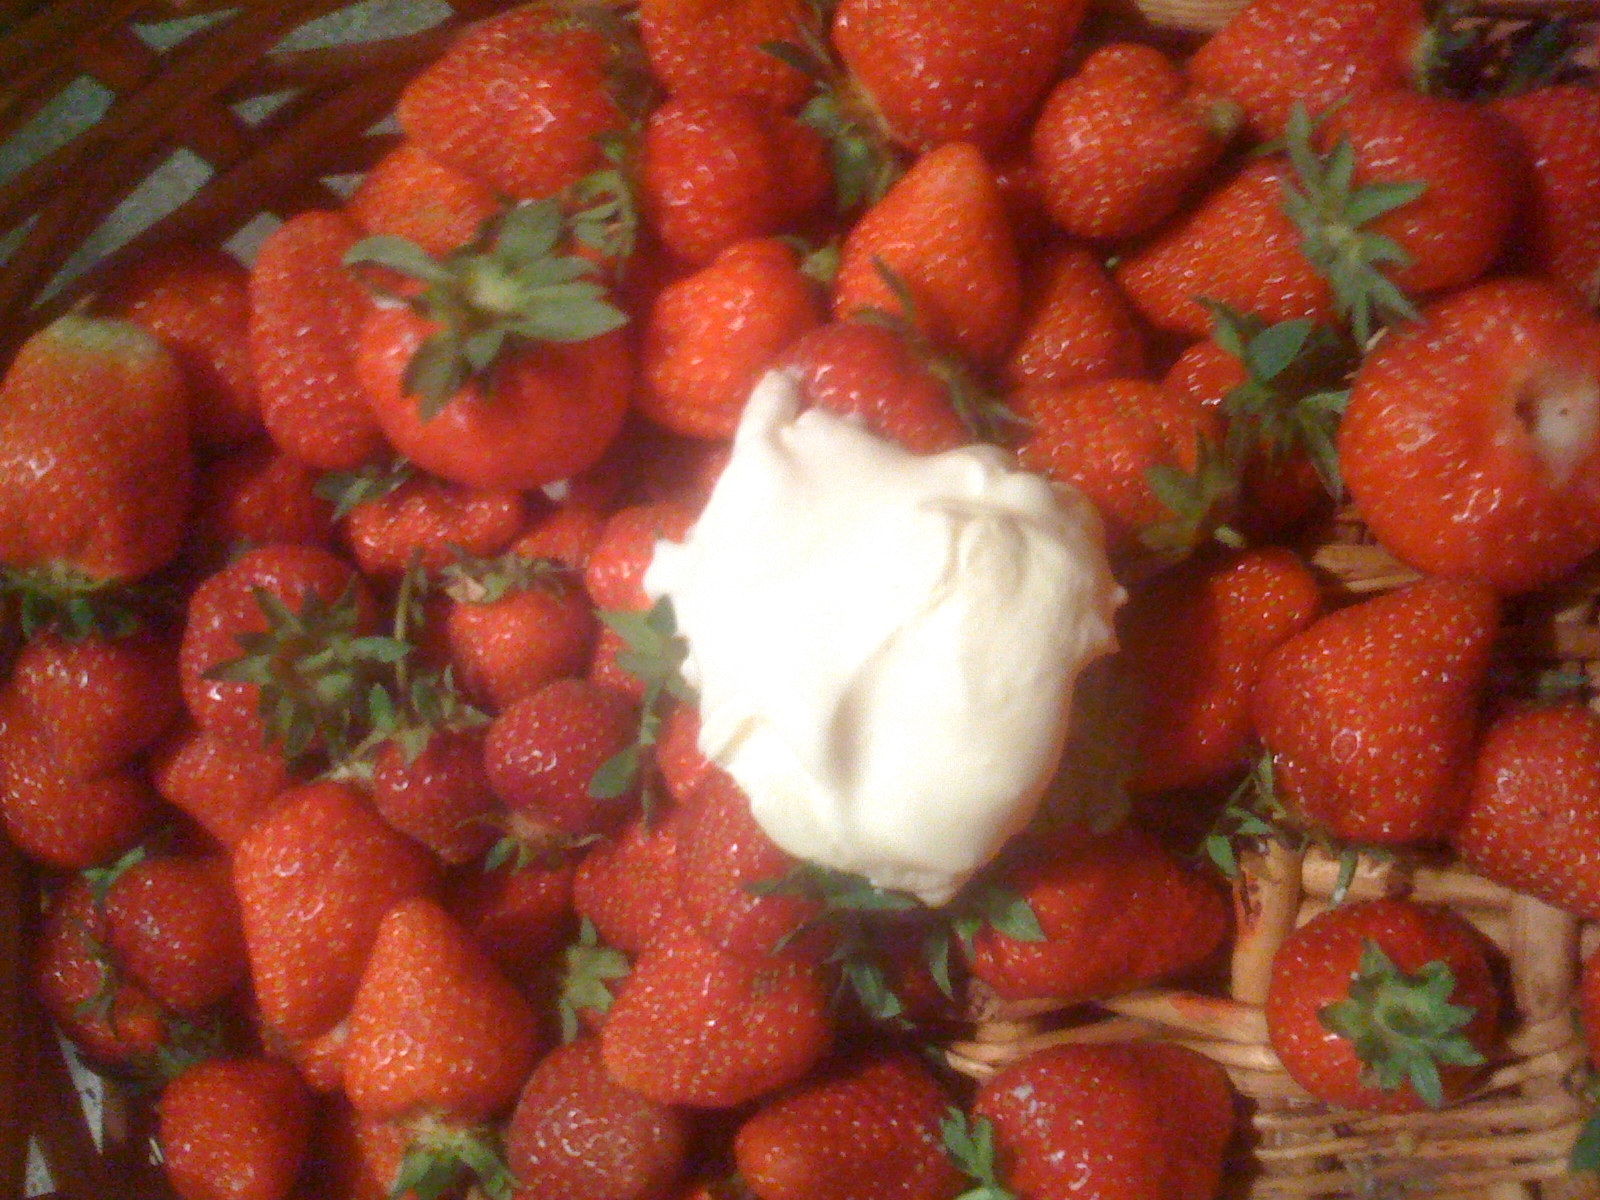 Strawberries & Whipped Cream